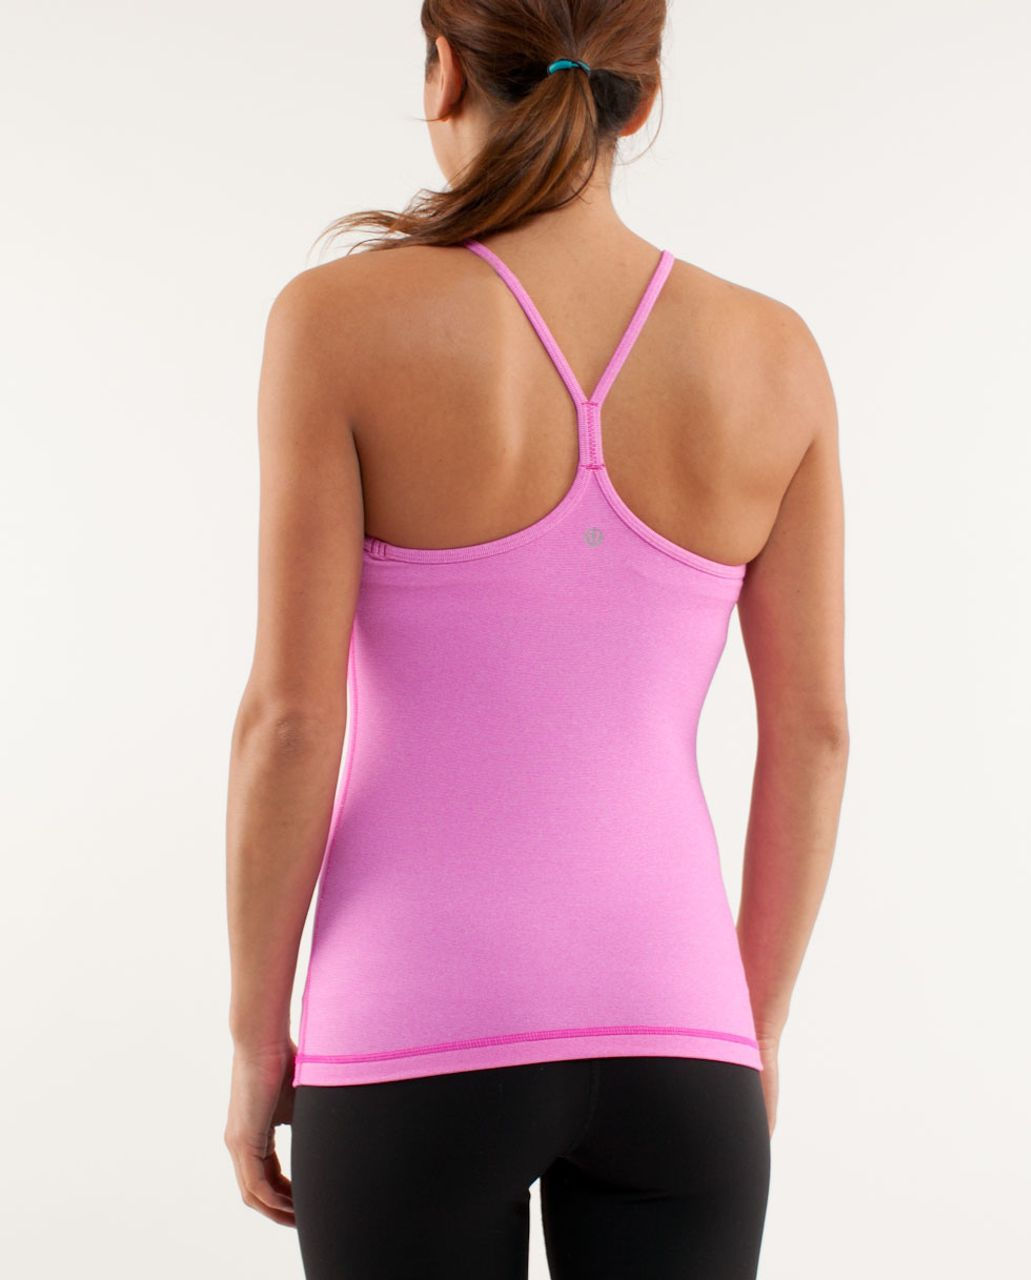 Lululemon Power Y Tank - Paris Pink White Microstripe